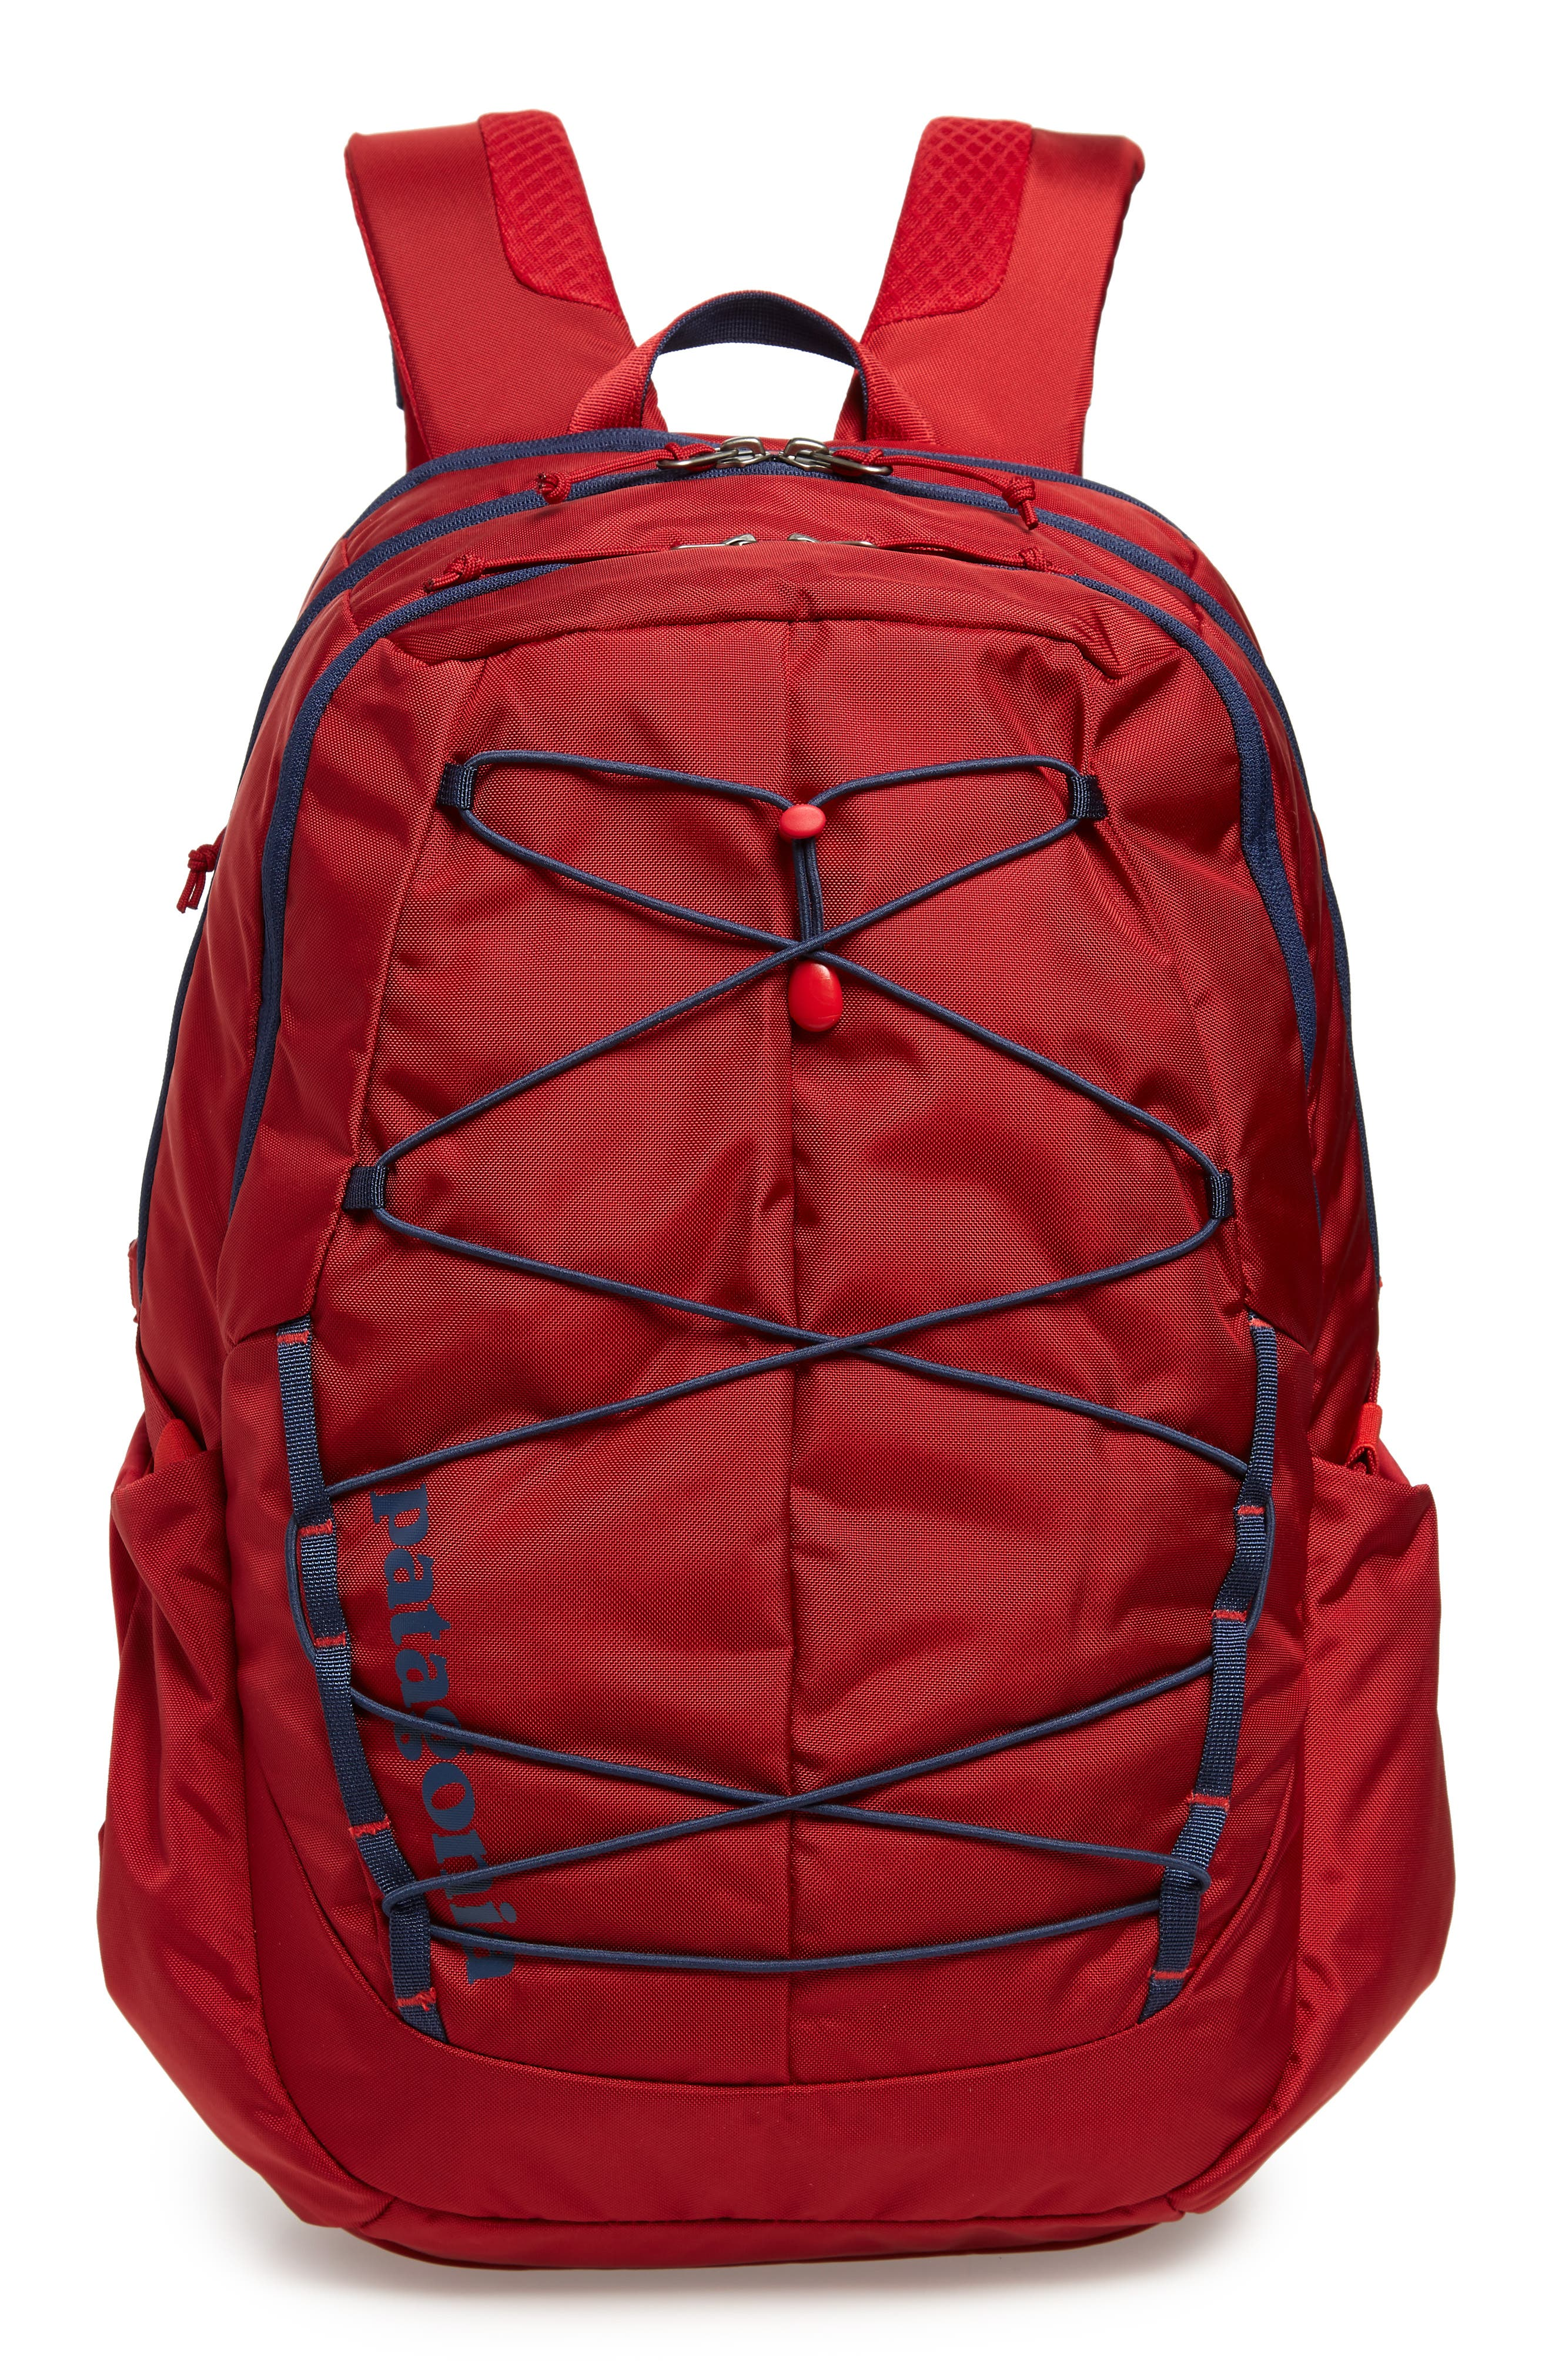 Patagonia Chacabuco 30-Liter Backpack -